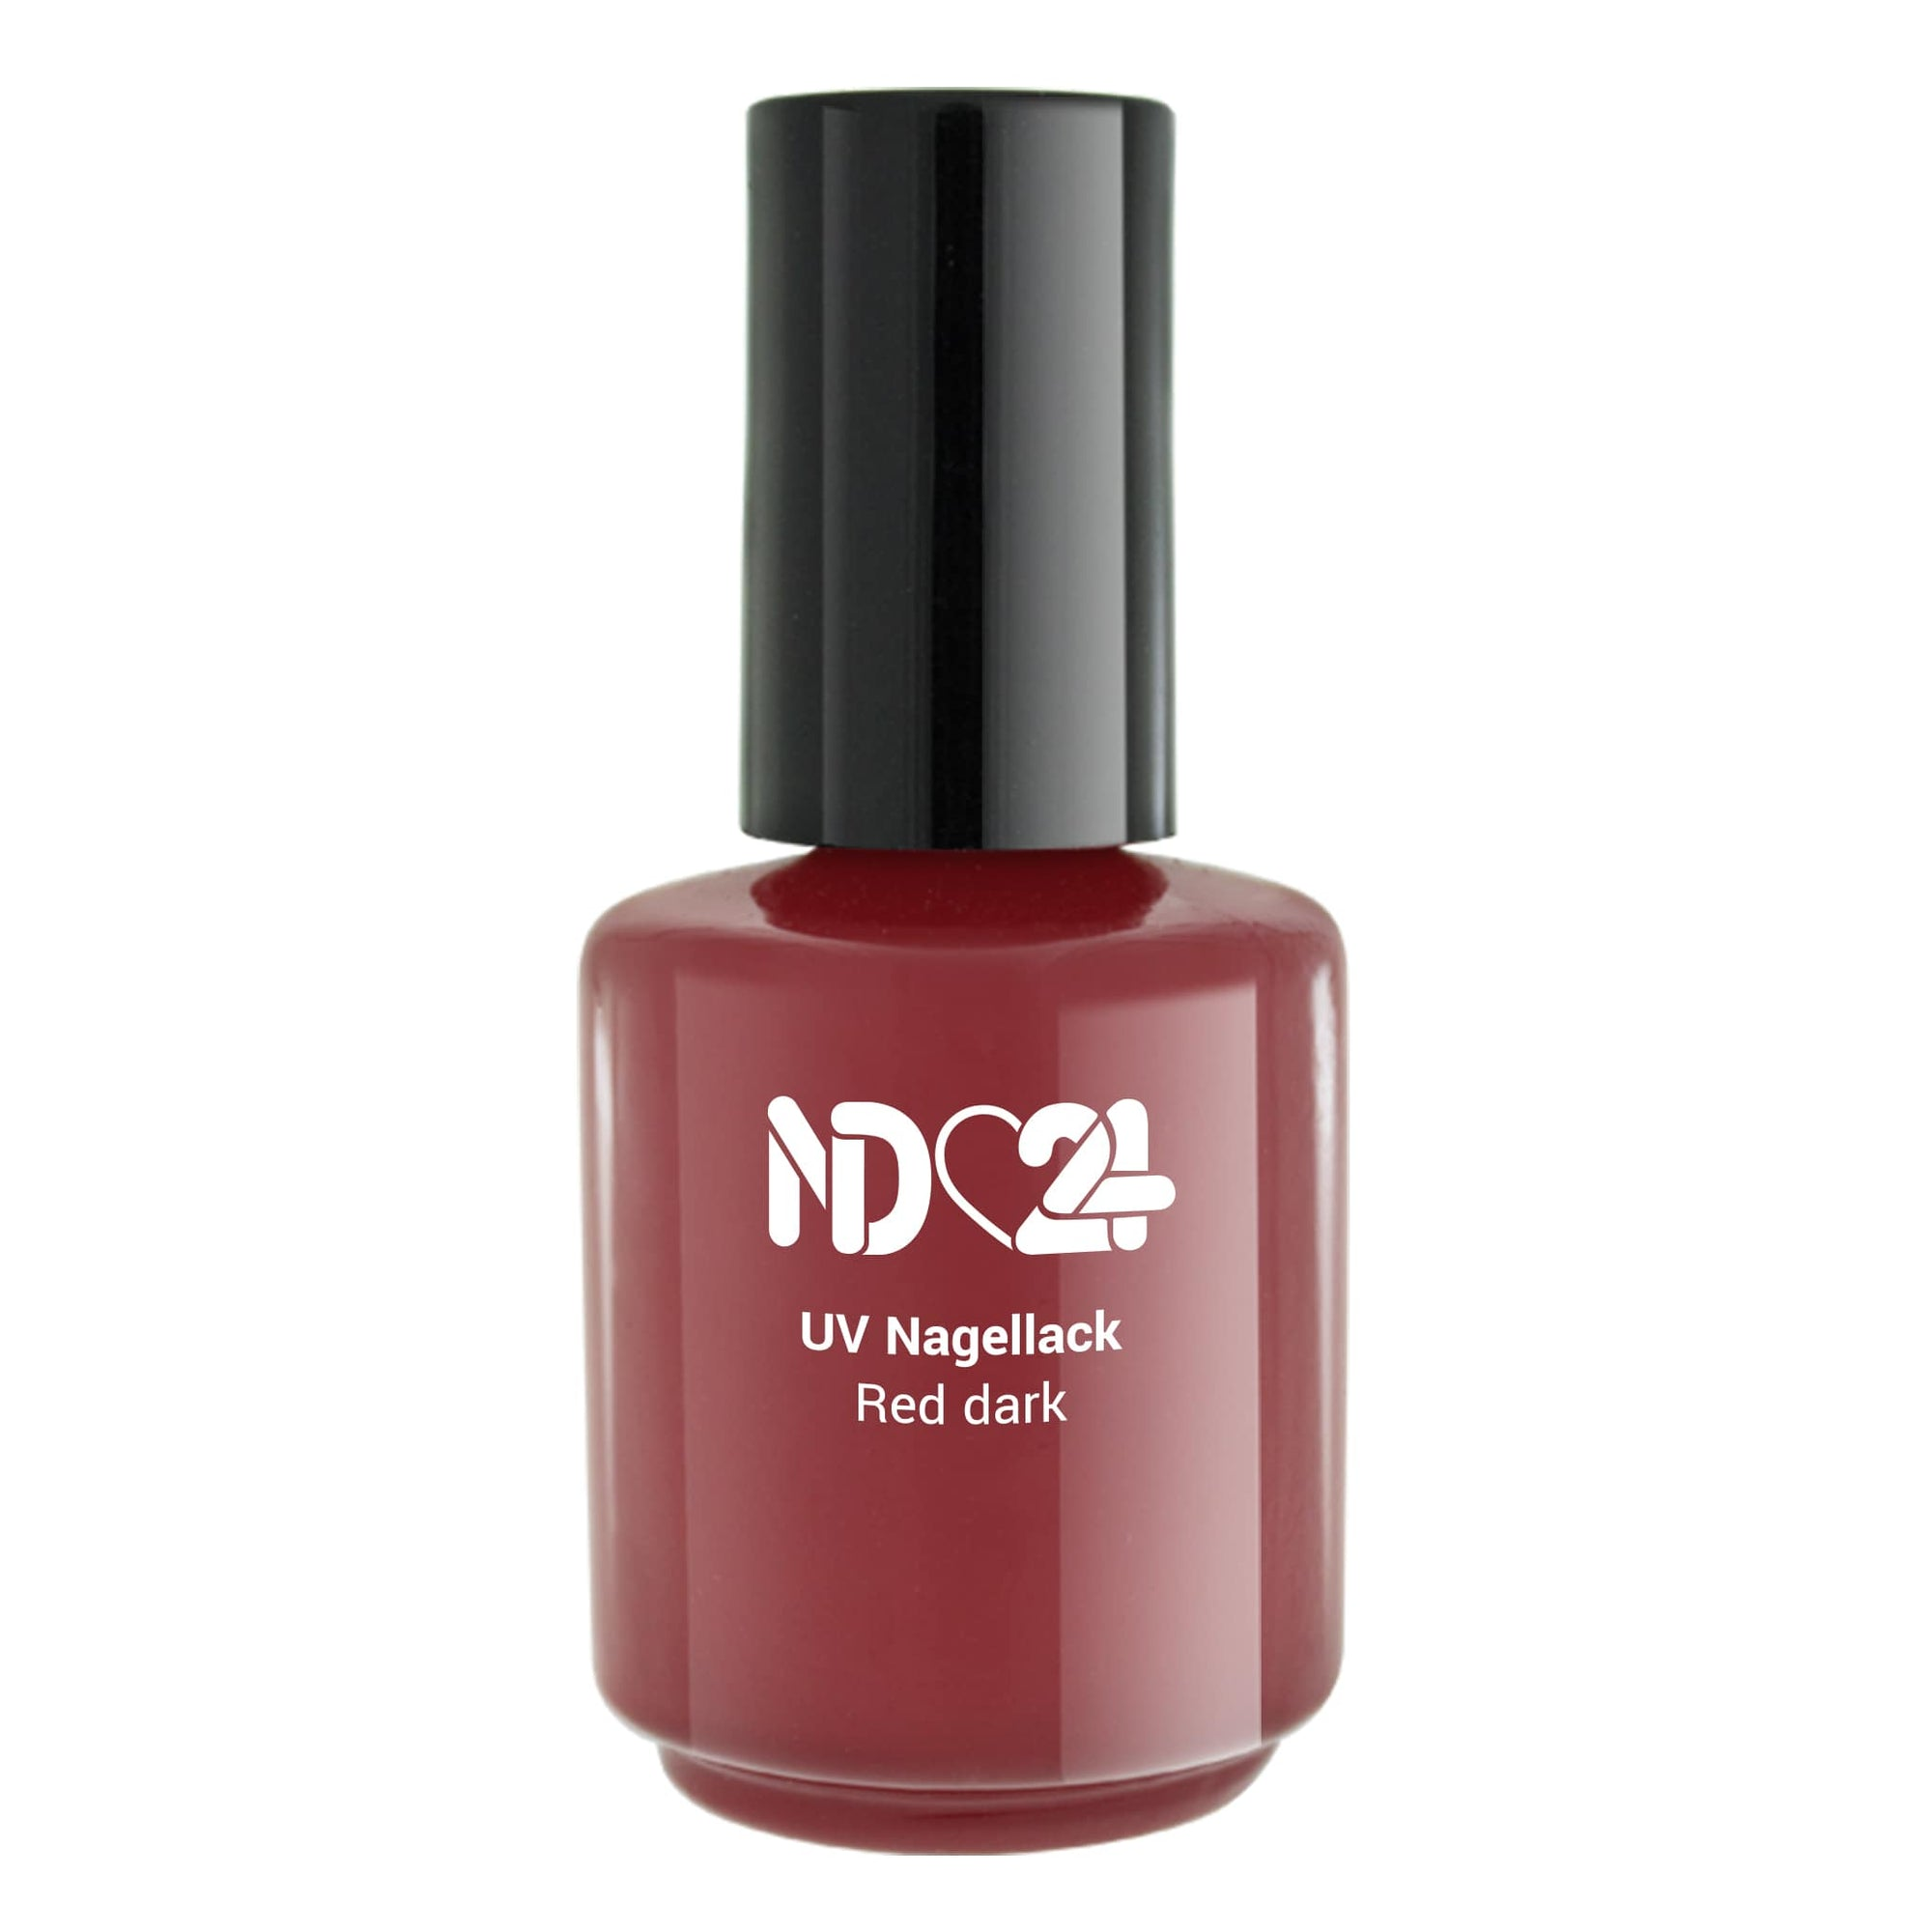 UV Nagellack Red dark